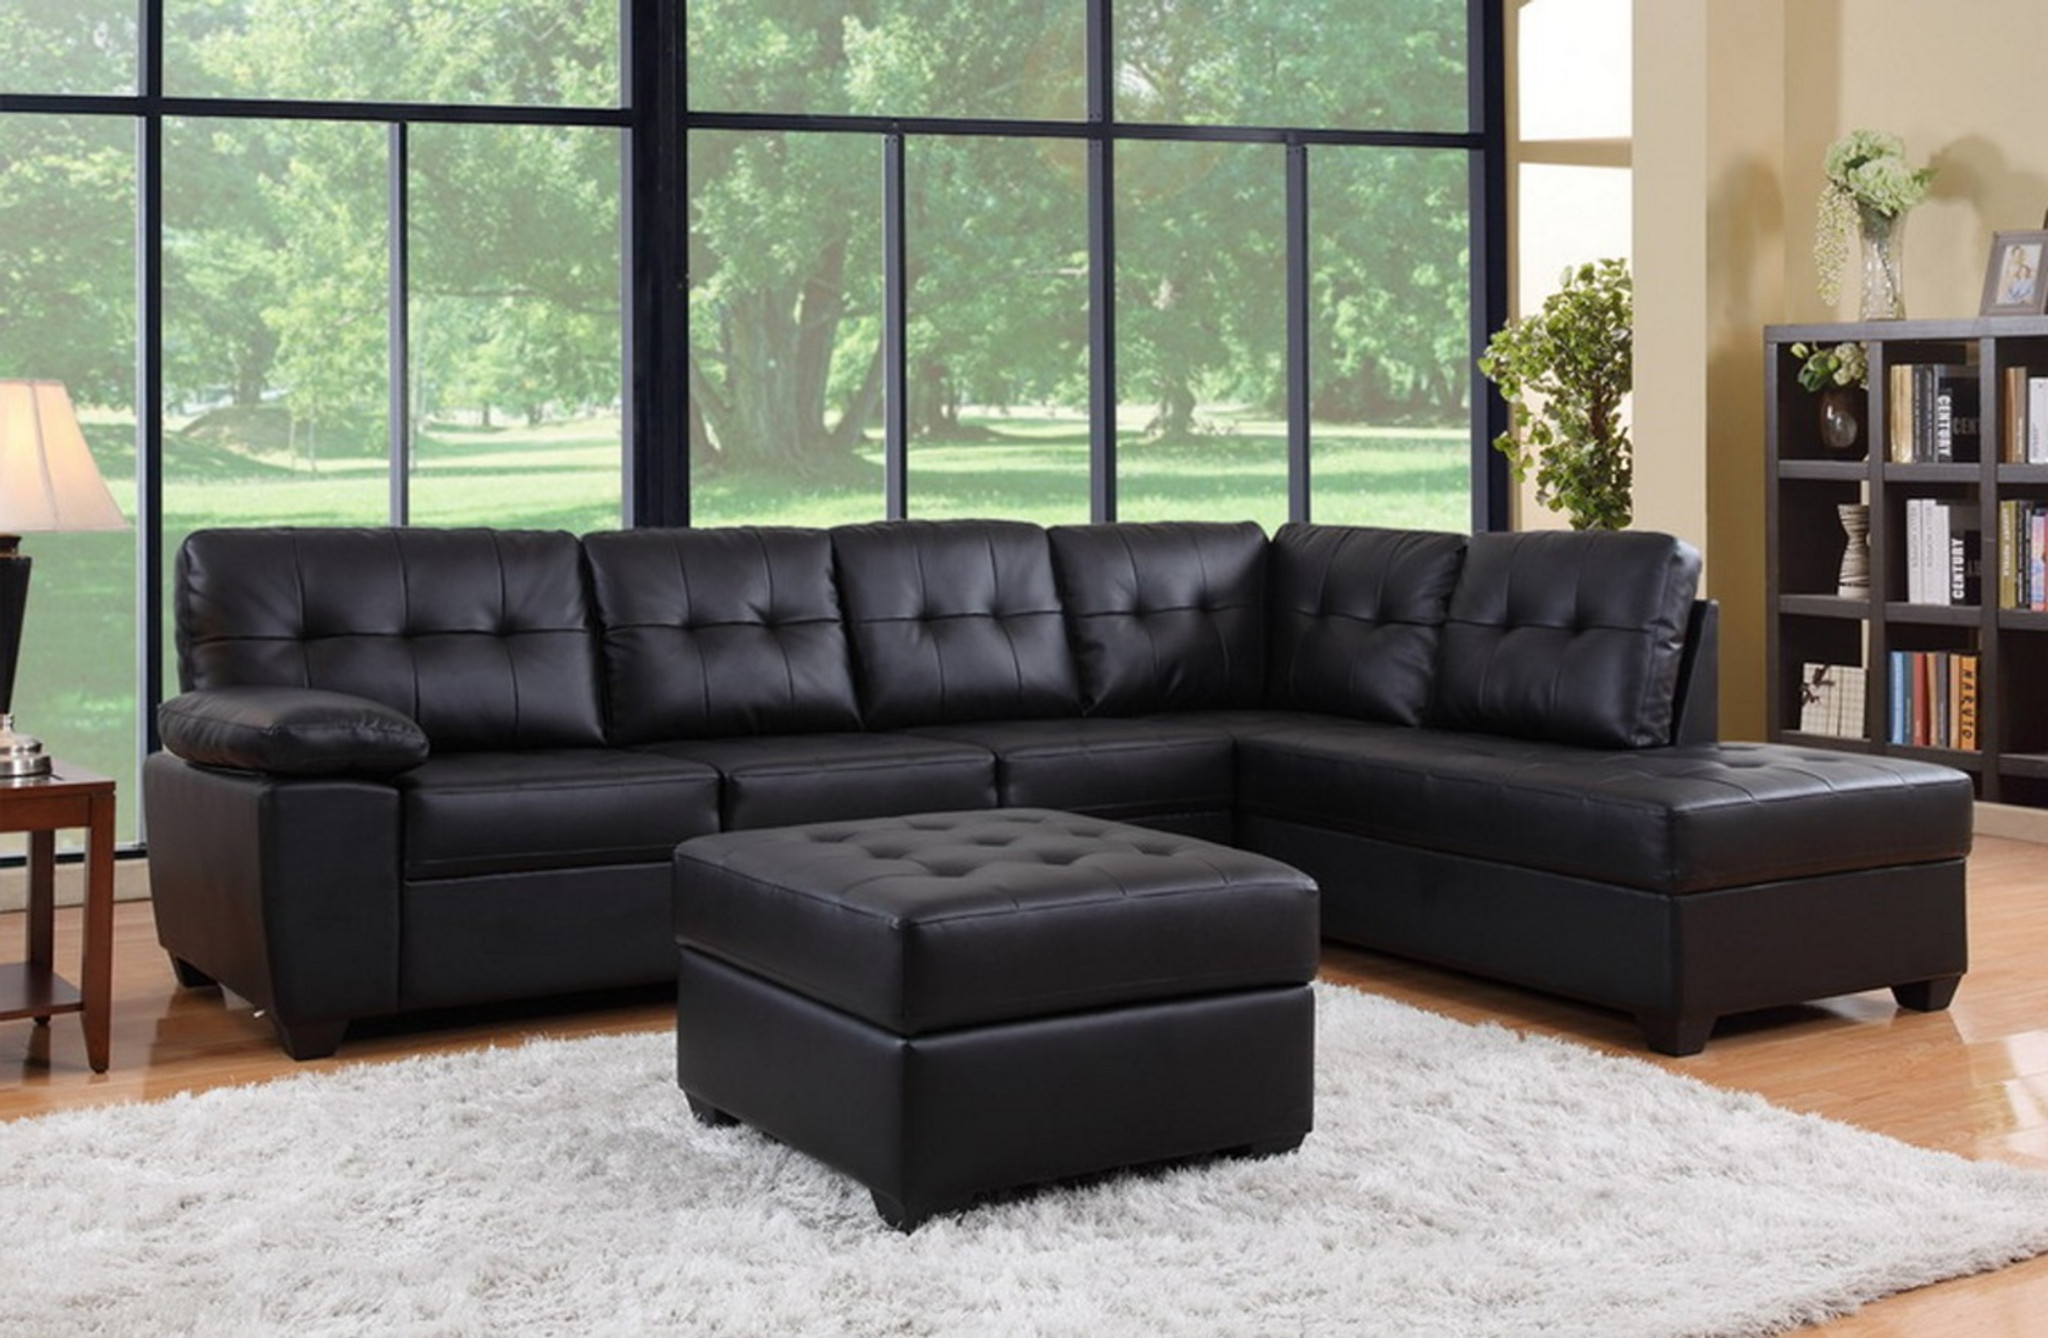 3pcs Black Leather Sectional Sofa Chaise And Ottoman